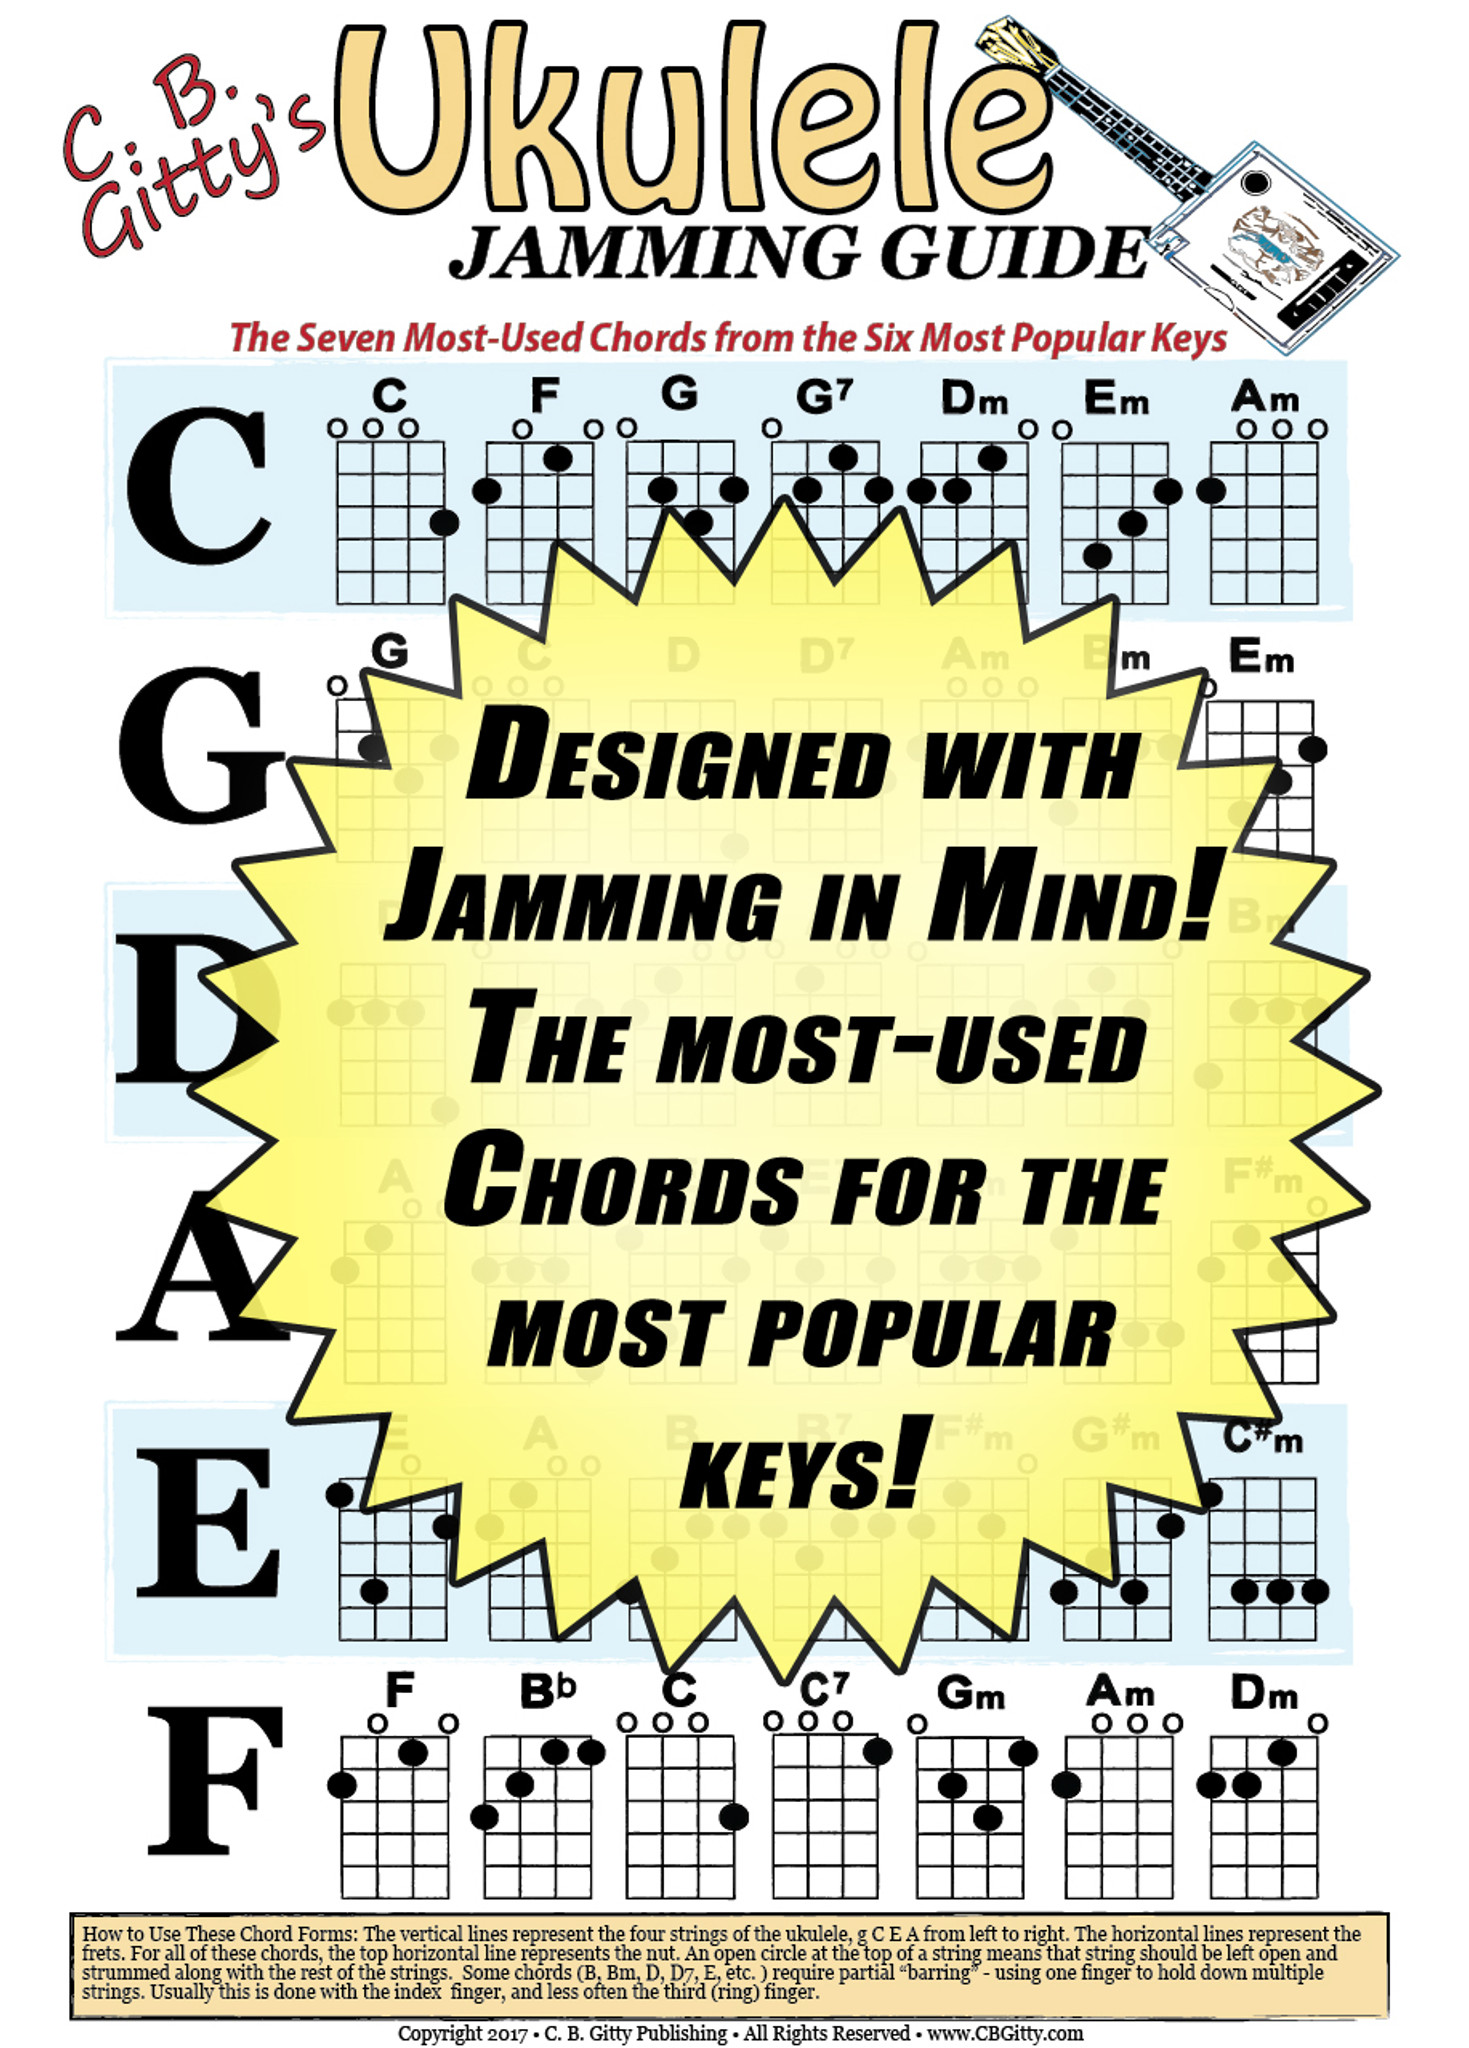 ukulele jamming guide poster glossy color 12x18 poster designed